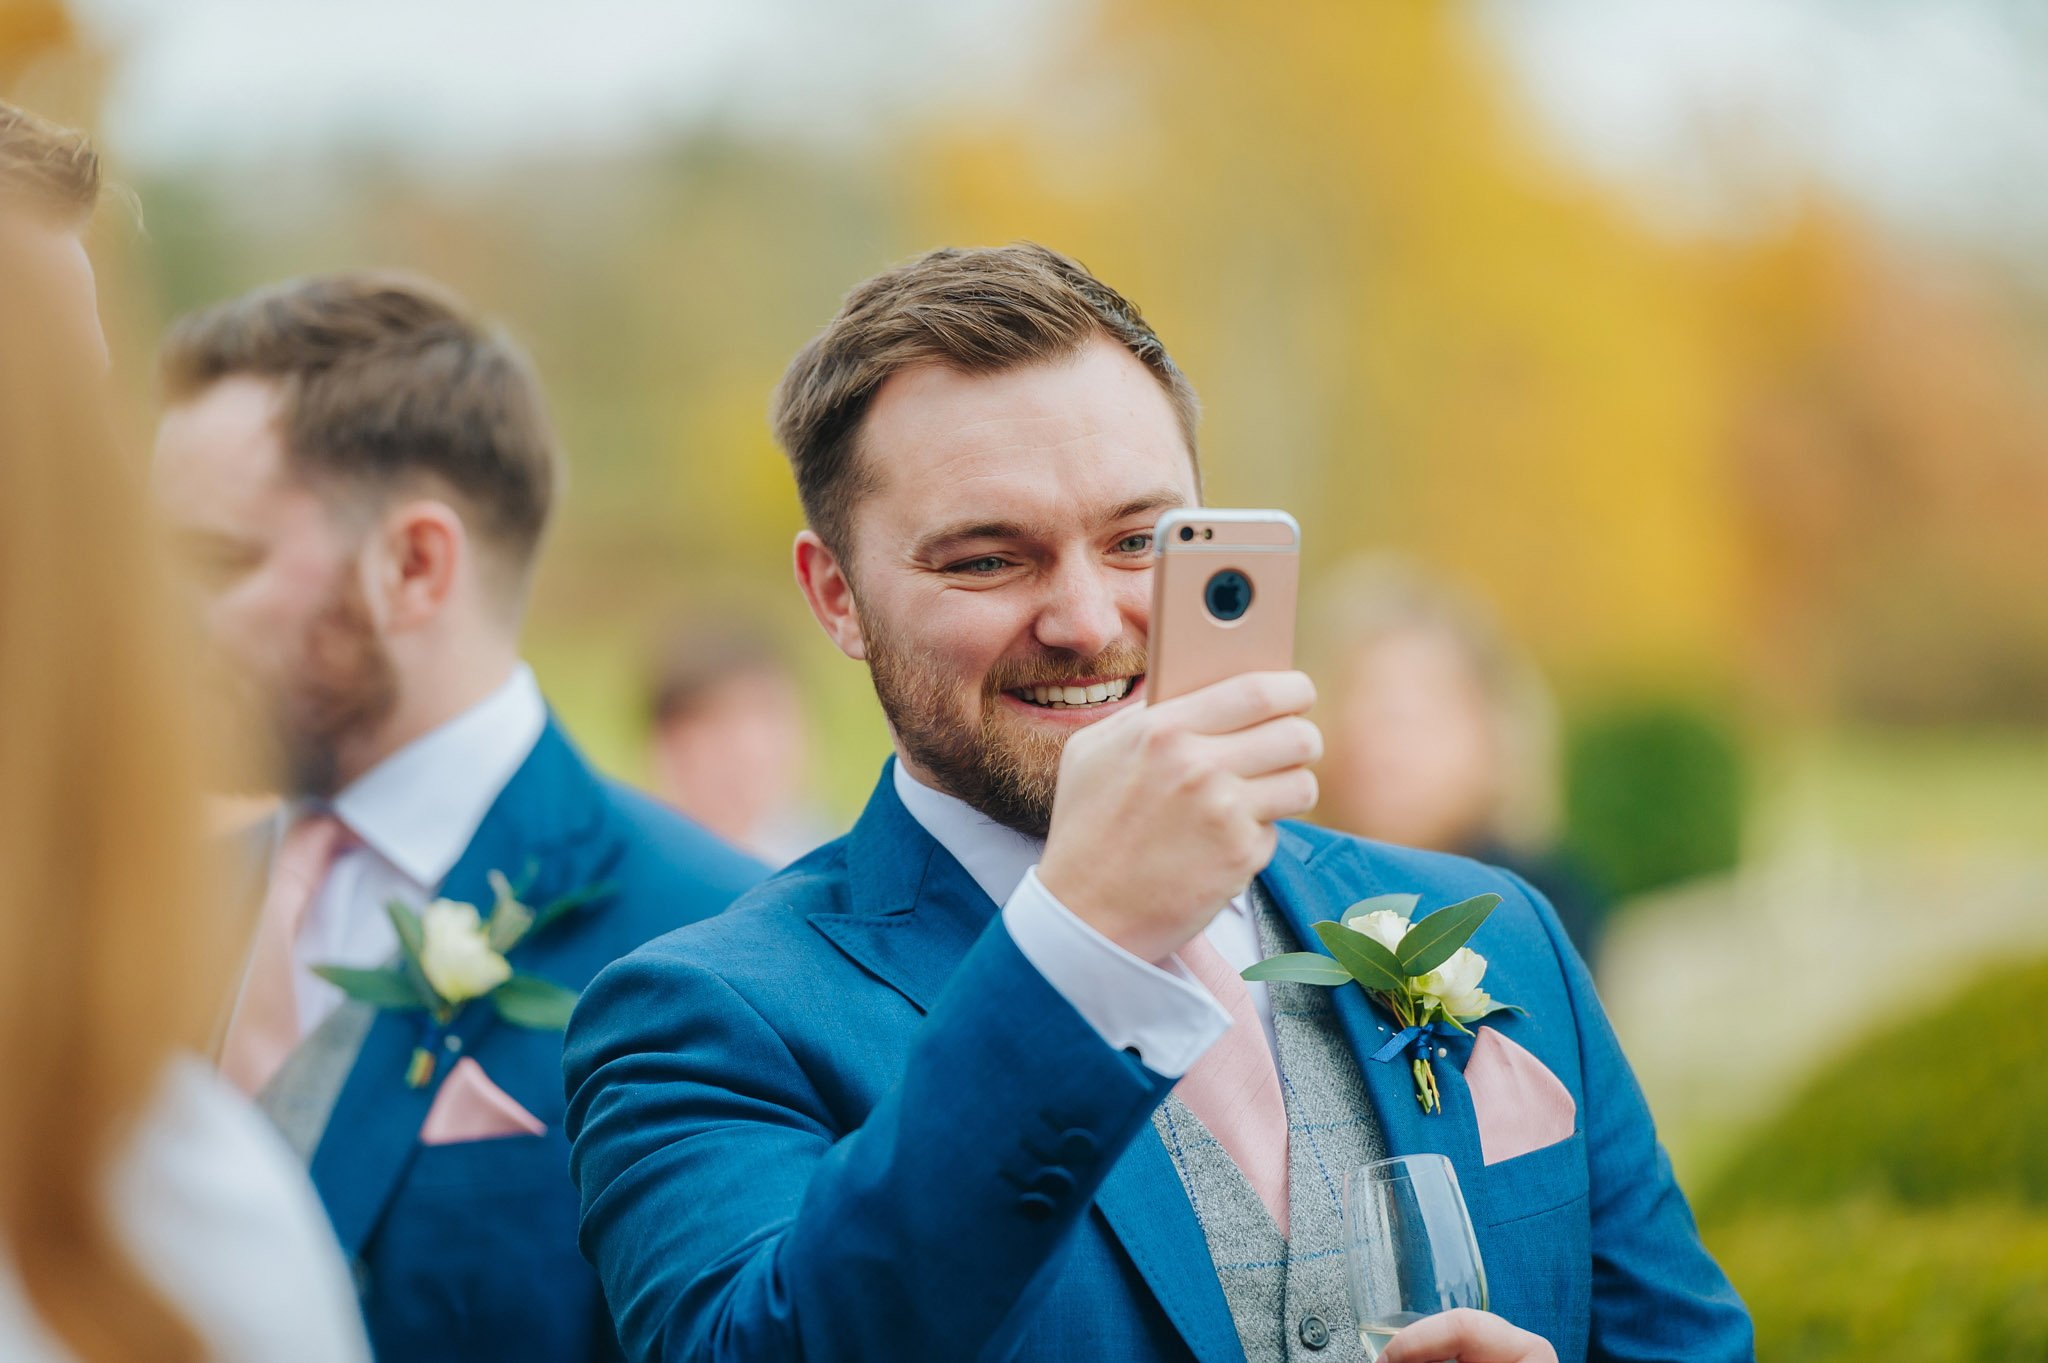 Lemore Manor wedding, Herefordshire - West Midlands | Sadie + Ken 48